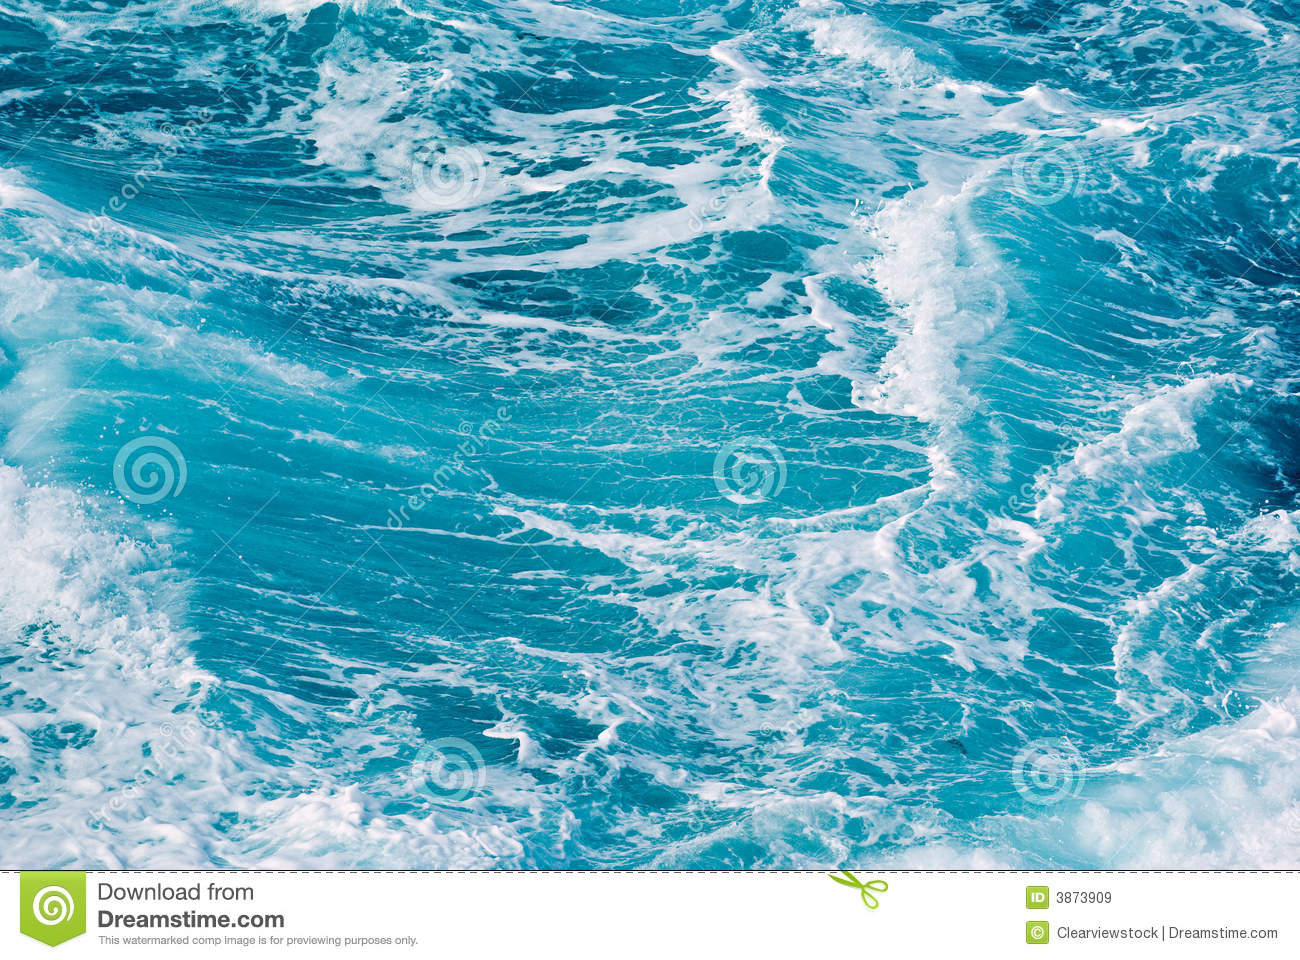 Blue Ocean Waves Background Royalty Free Stock Images - Image: 3873909